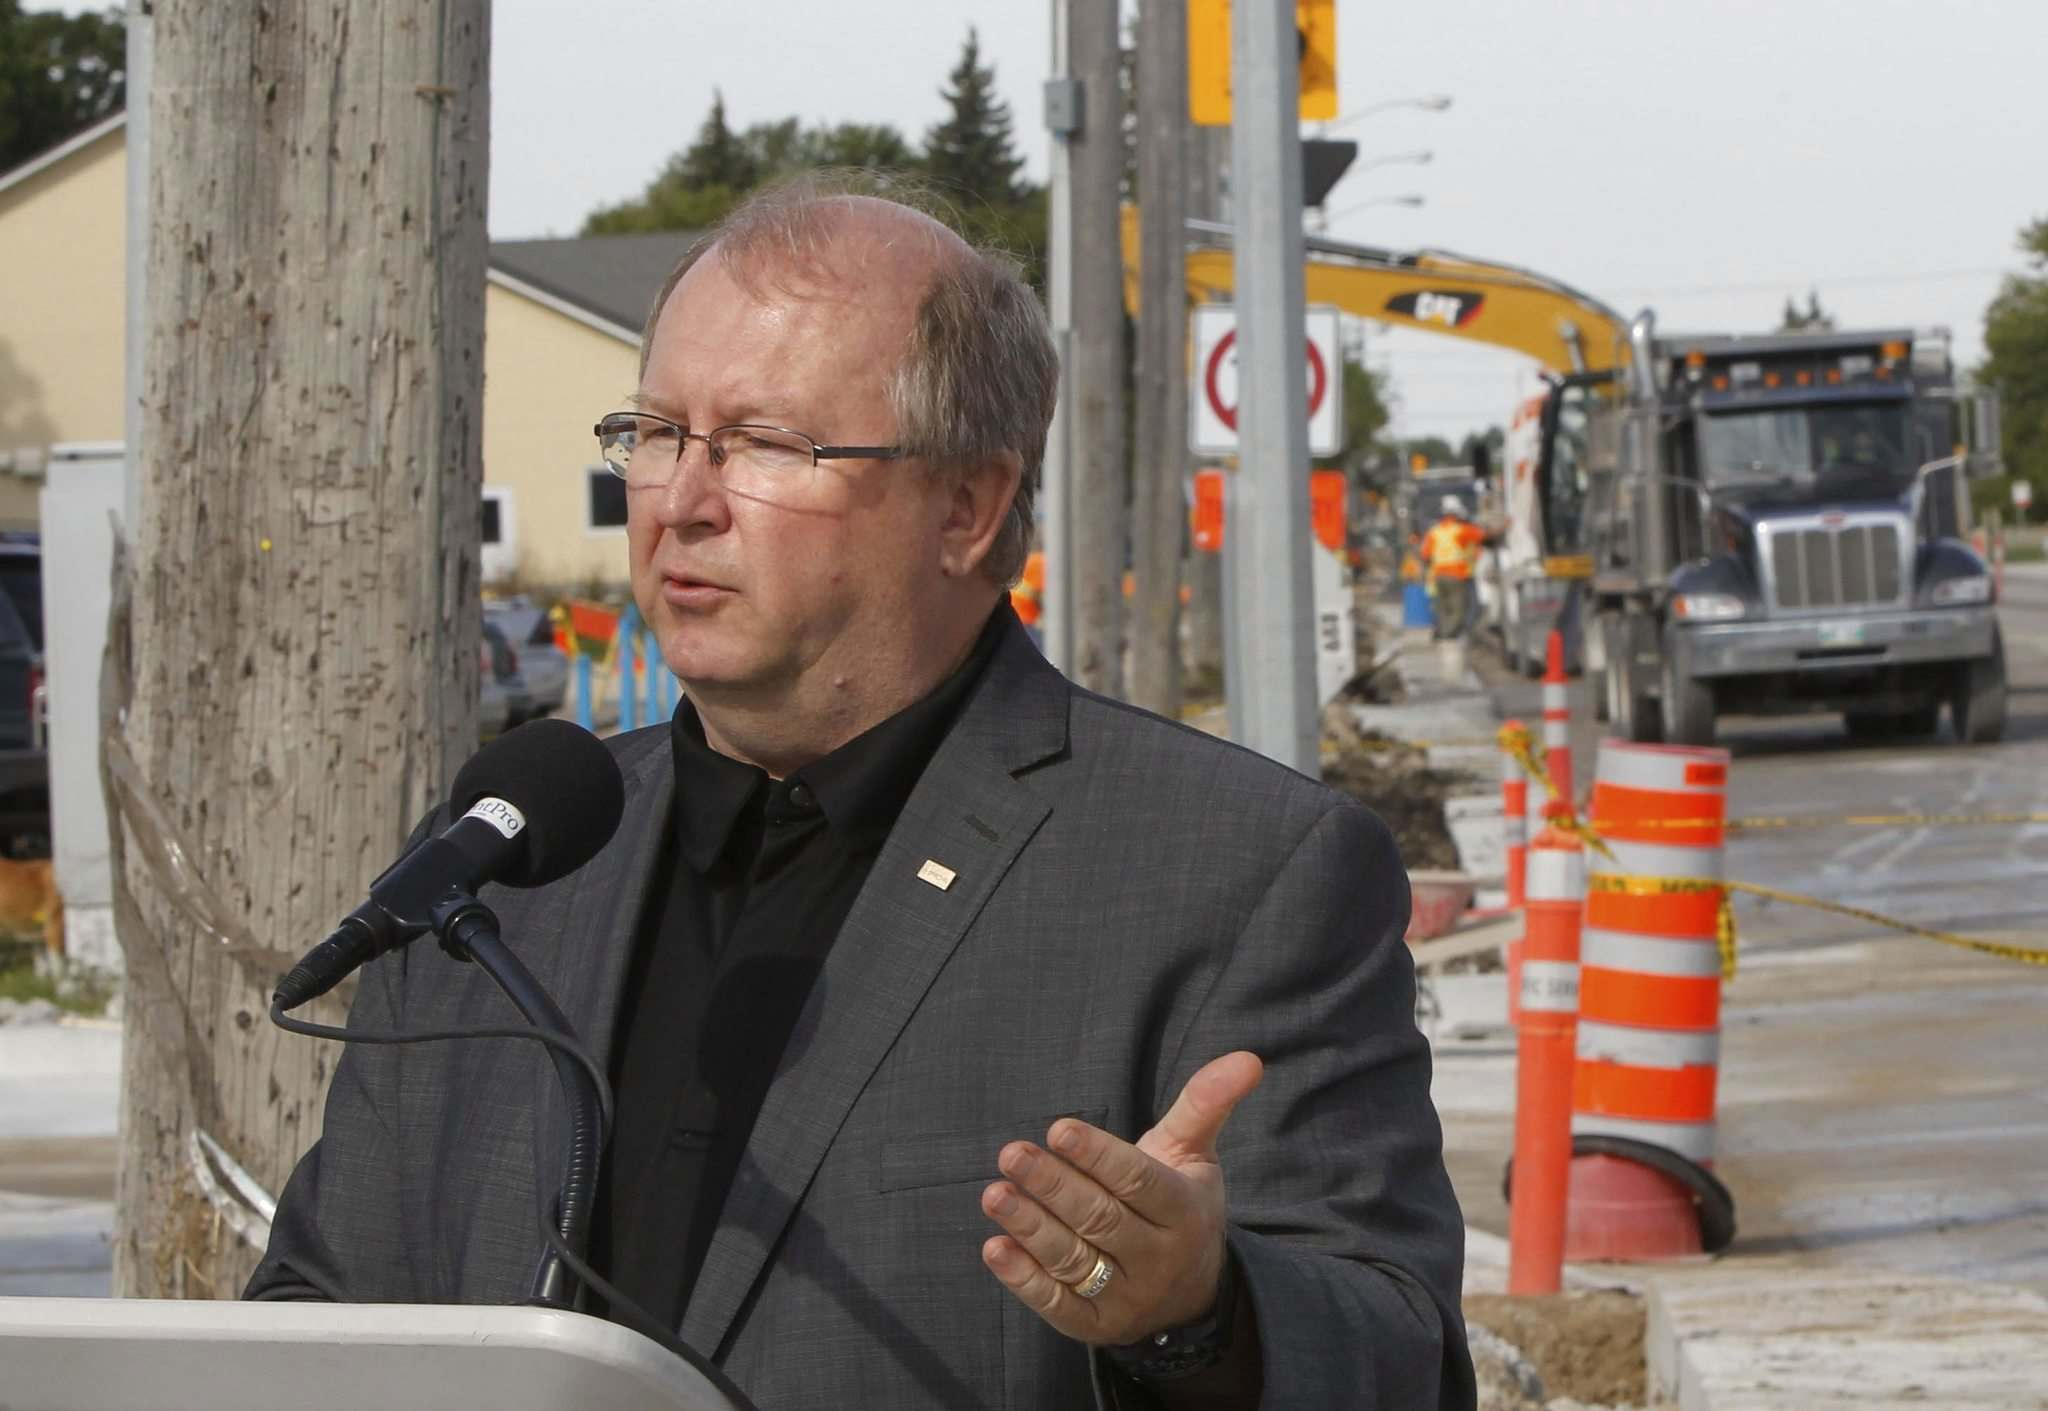 WAYNE GLOWACKI / WINNIPEG FREE PRESS FILES</p><p>Manitoba Heavy Construction Association president Chris Lorenc says government cuts undermine Manitoba's growth and competitiveness.</p>